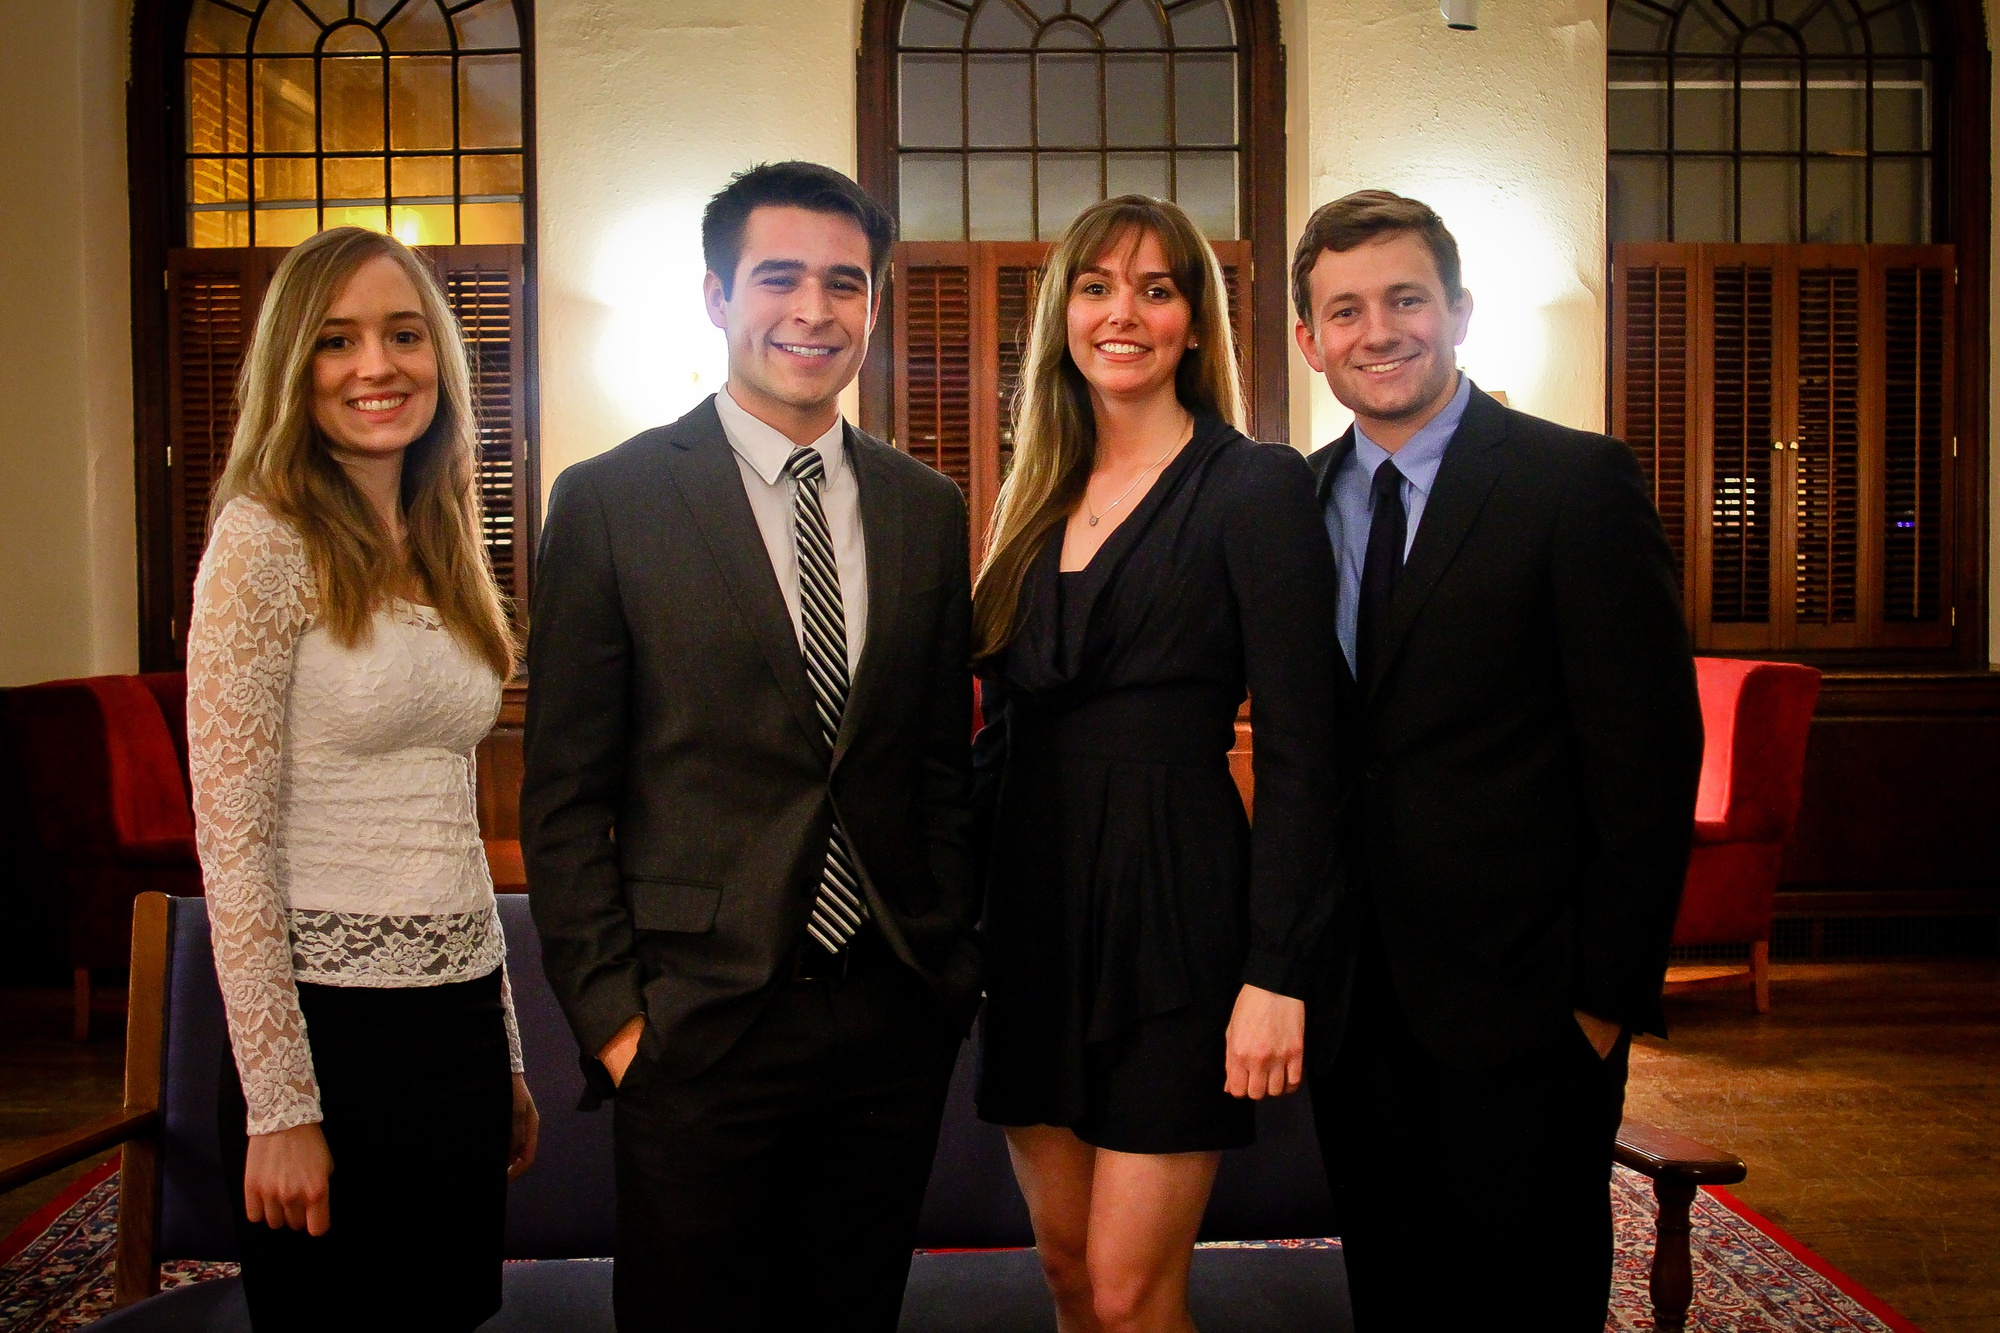 Ivy Orators Jenna D. Martin '14 and Zack W. Guzman '14, and Harvard Orators Christy L. Disilvestro '14 and Adam J. Conner '14 will speak at this year's College Class Day.